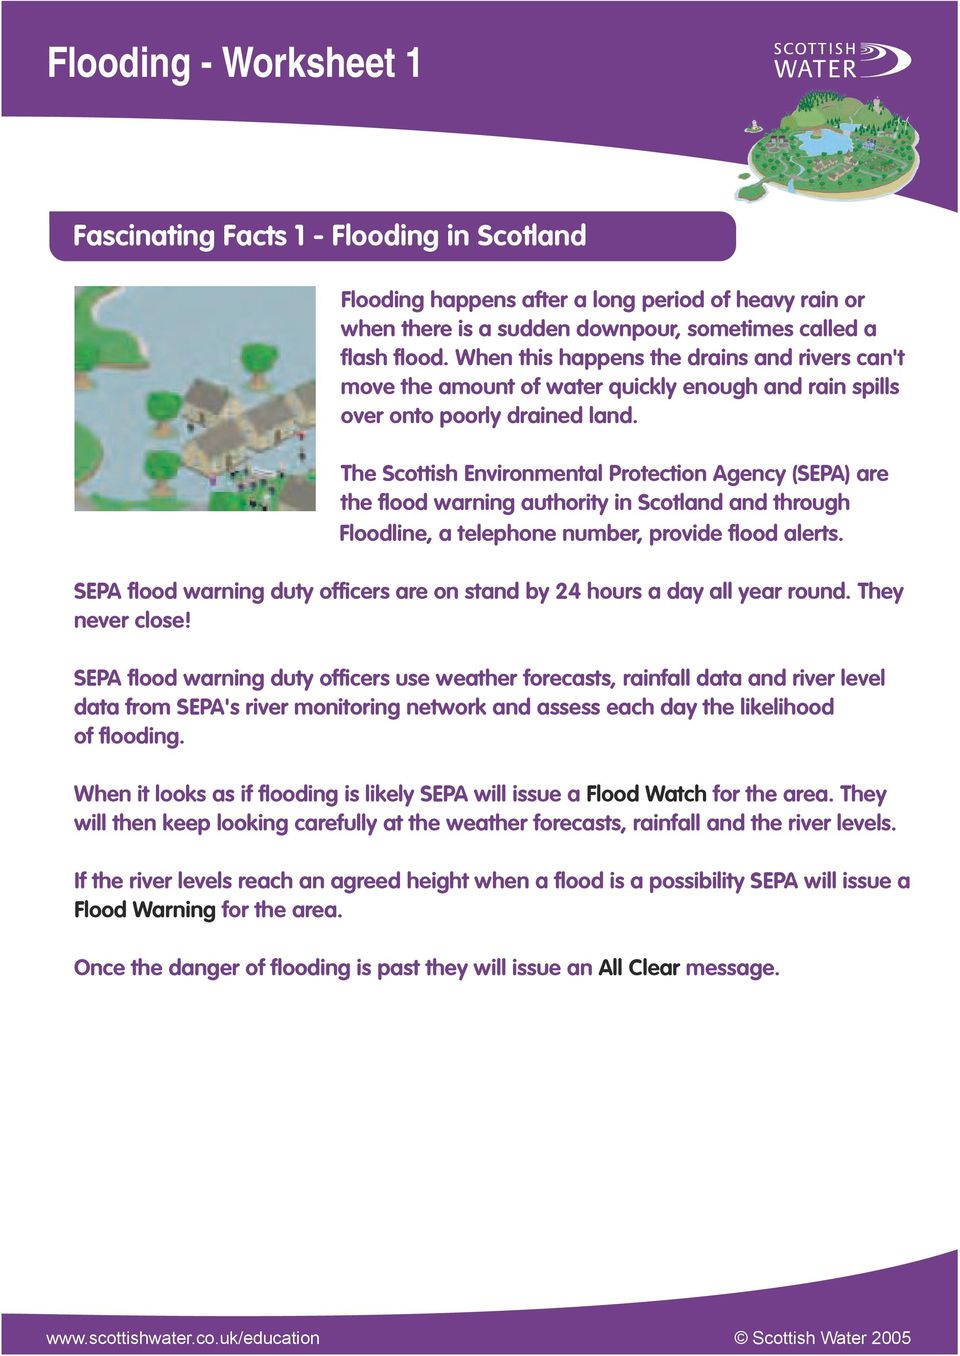 The Scottish Environmental Protection Agency (SEPA) are the flood warning authority in Scotland and through Floodline, a telephone number, provide flood alerts.